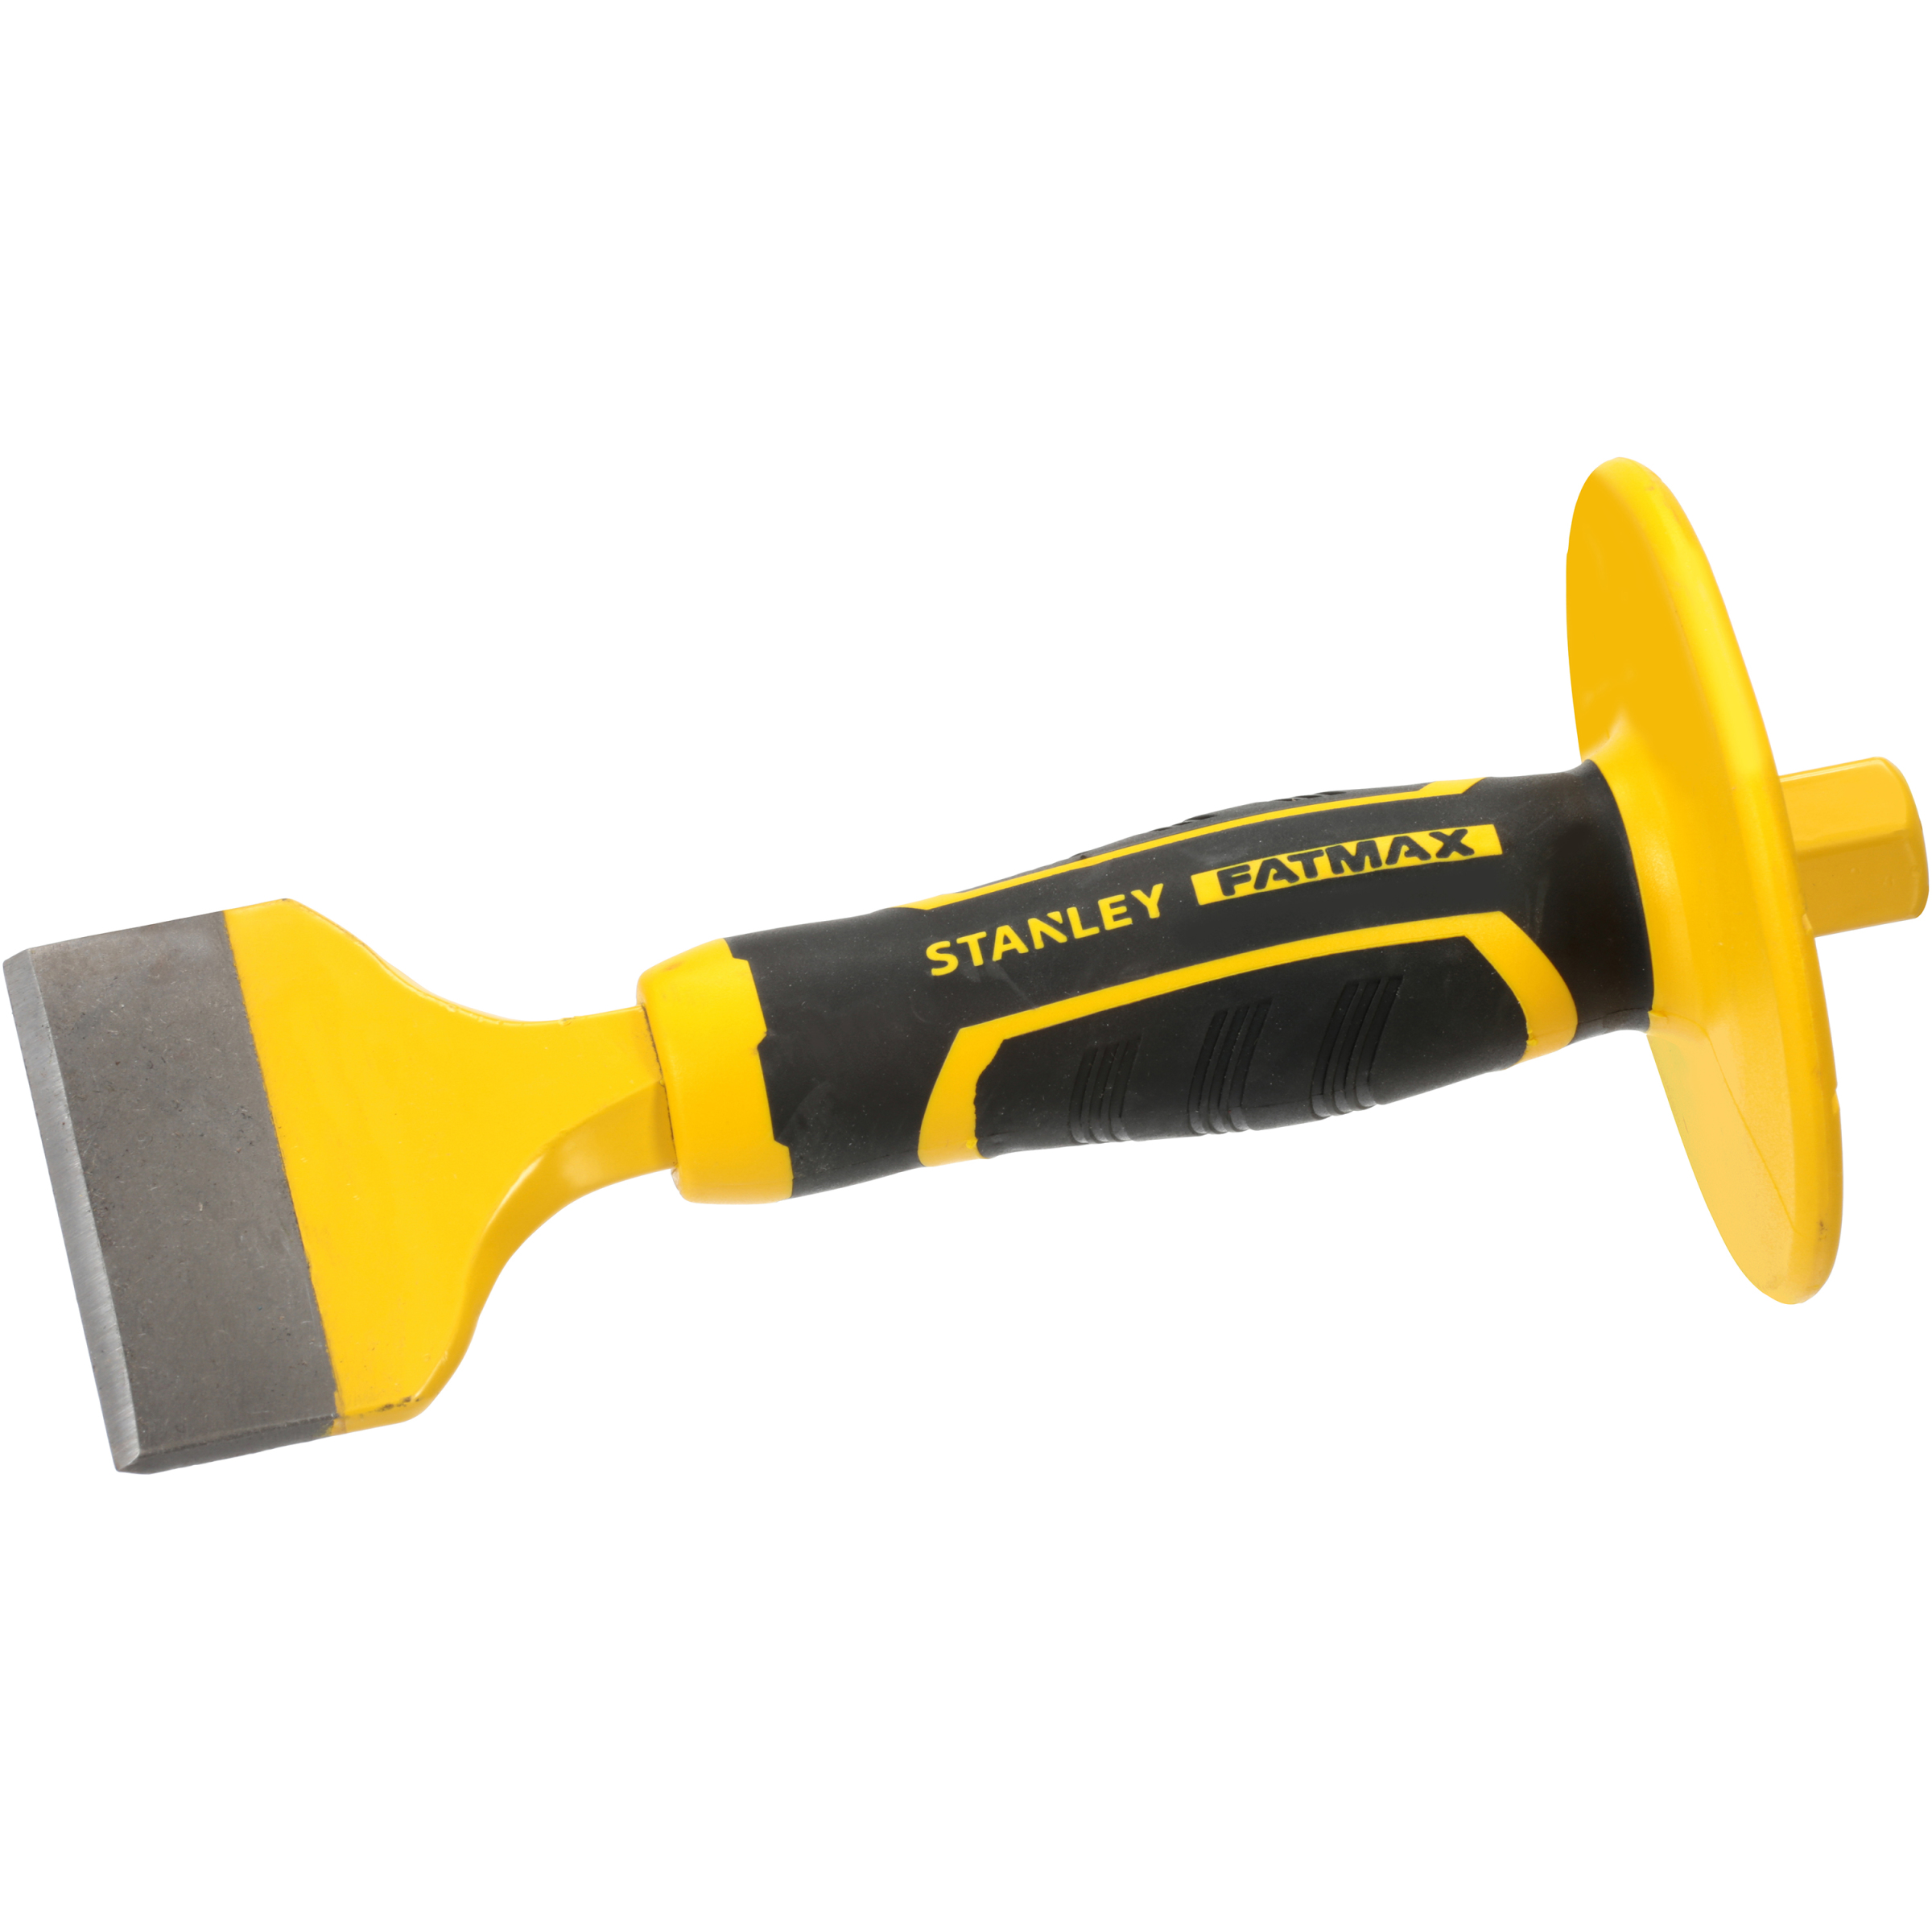 "Stanley Fatmax 2�"" Mason's Chisel with Guard by Stanley Tools"